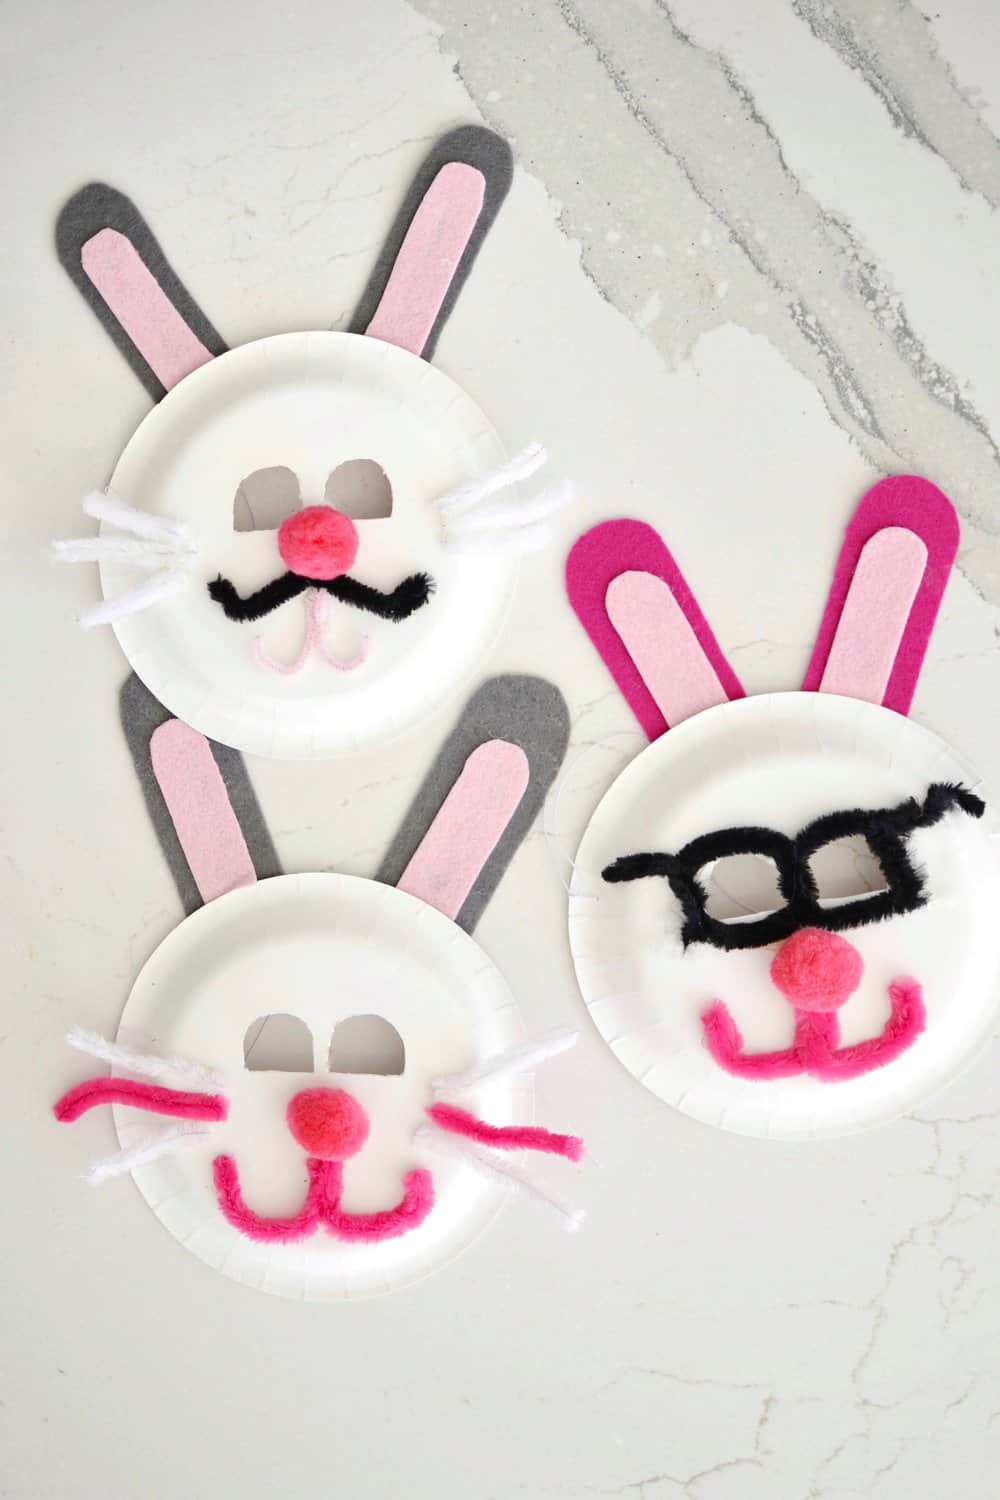 3 easter bunny masks on a counter